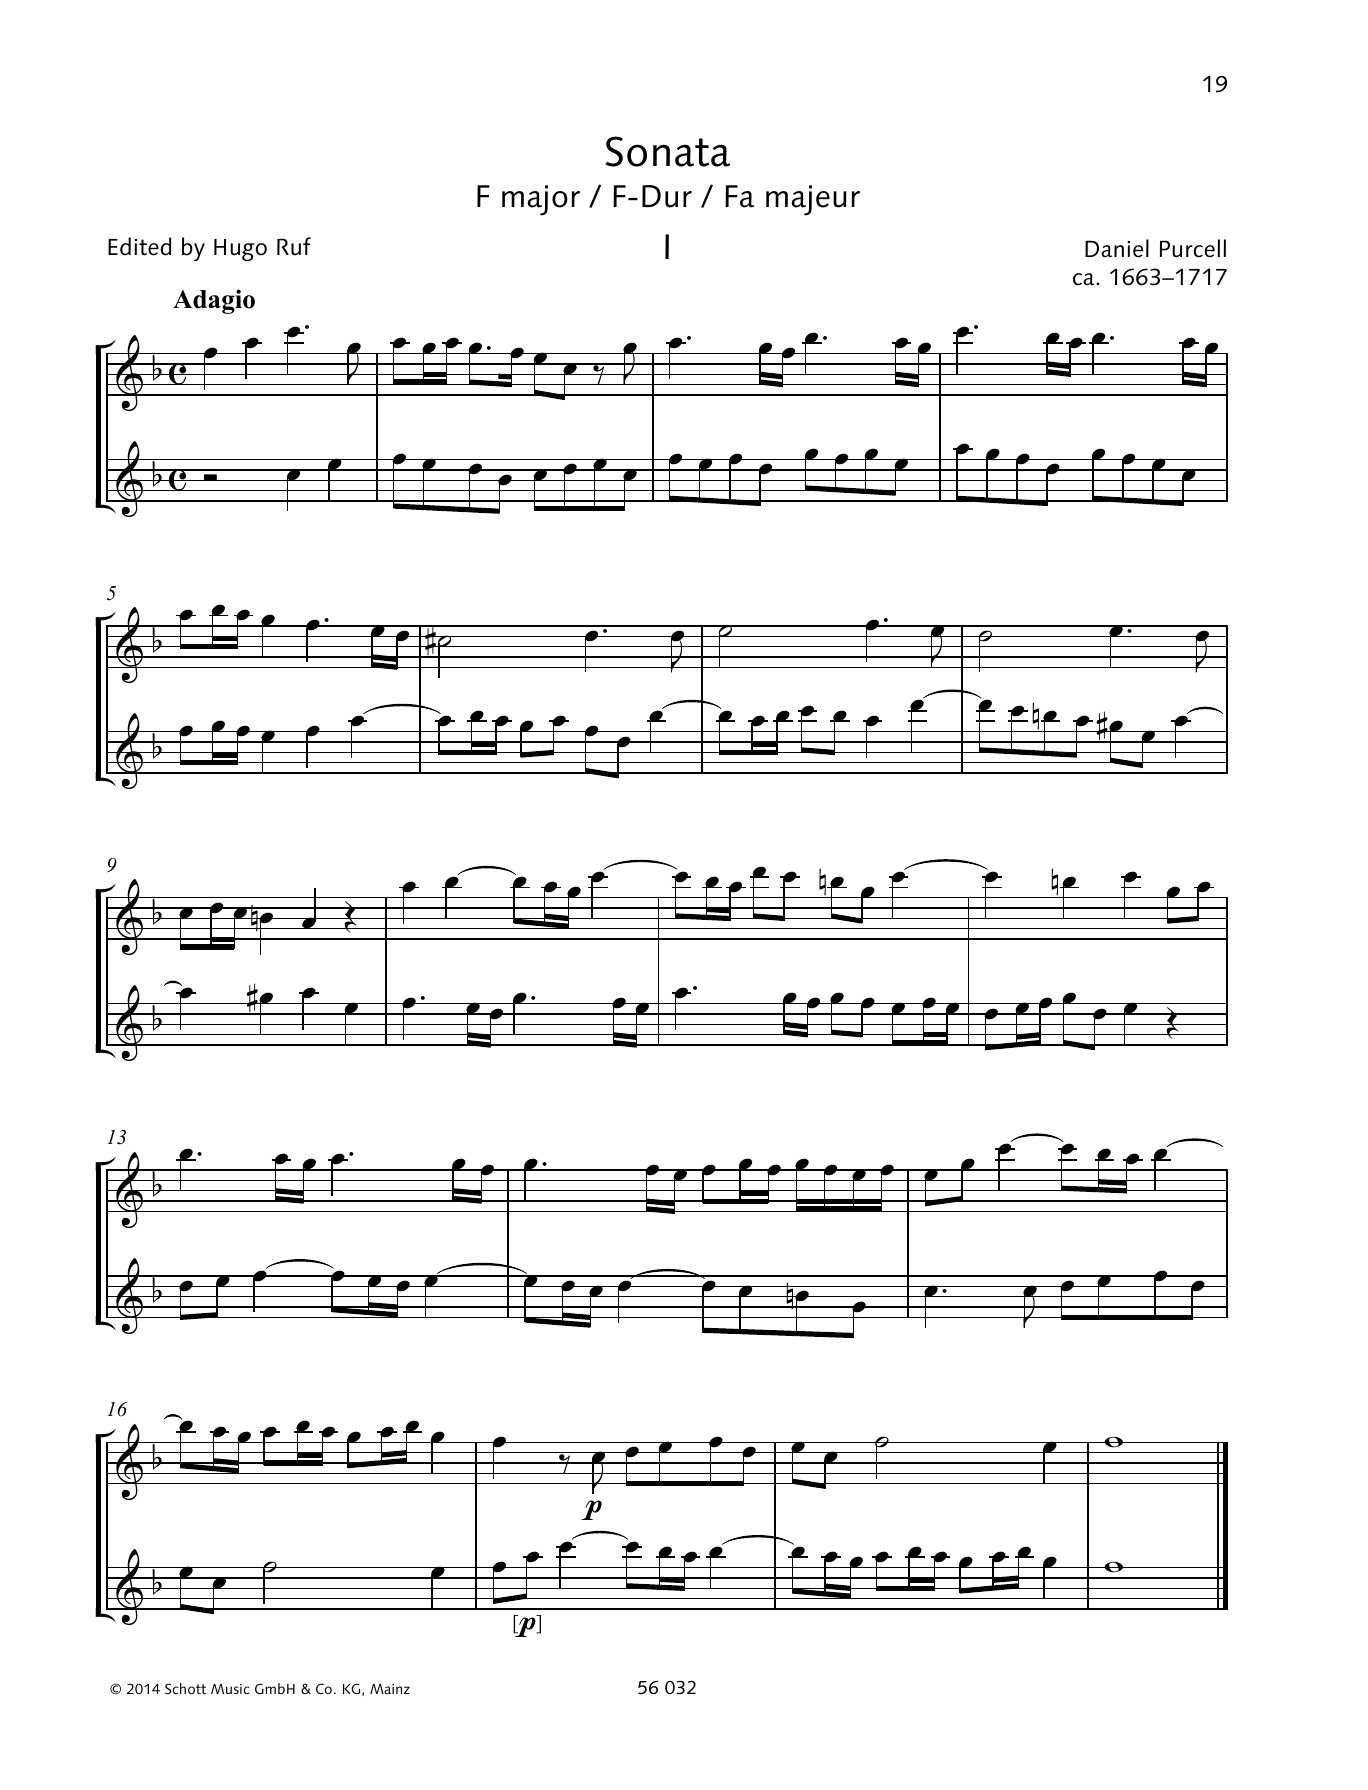 Sonata F Major Sheet Music